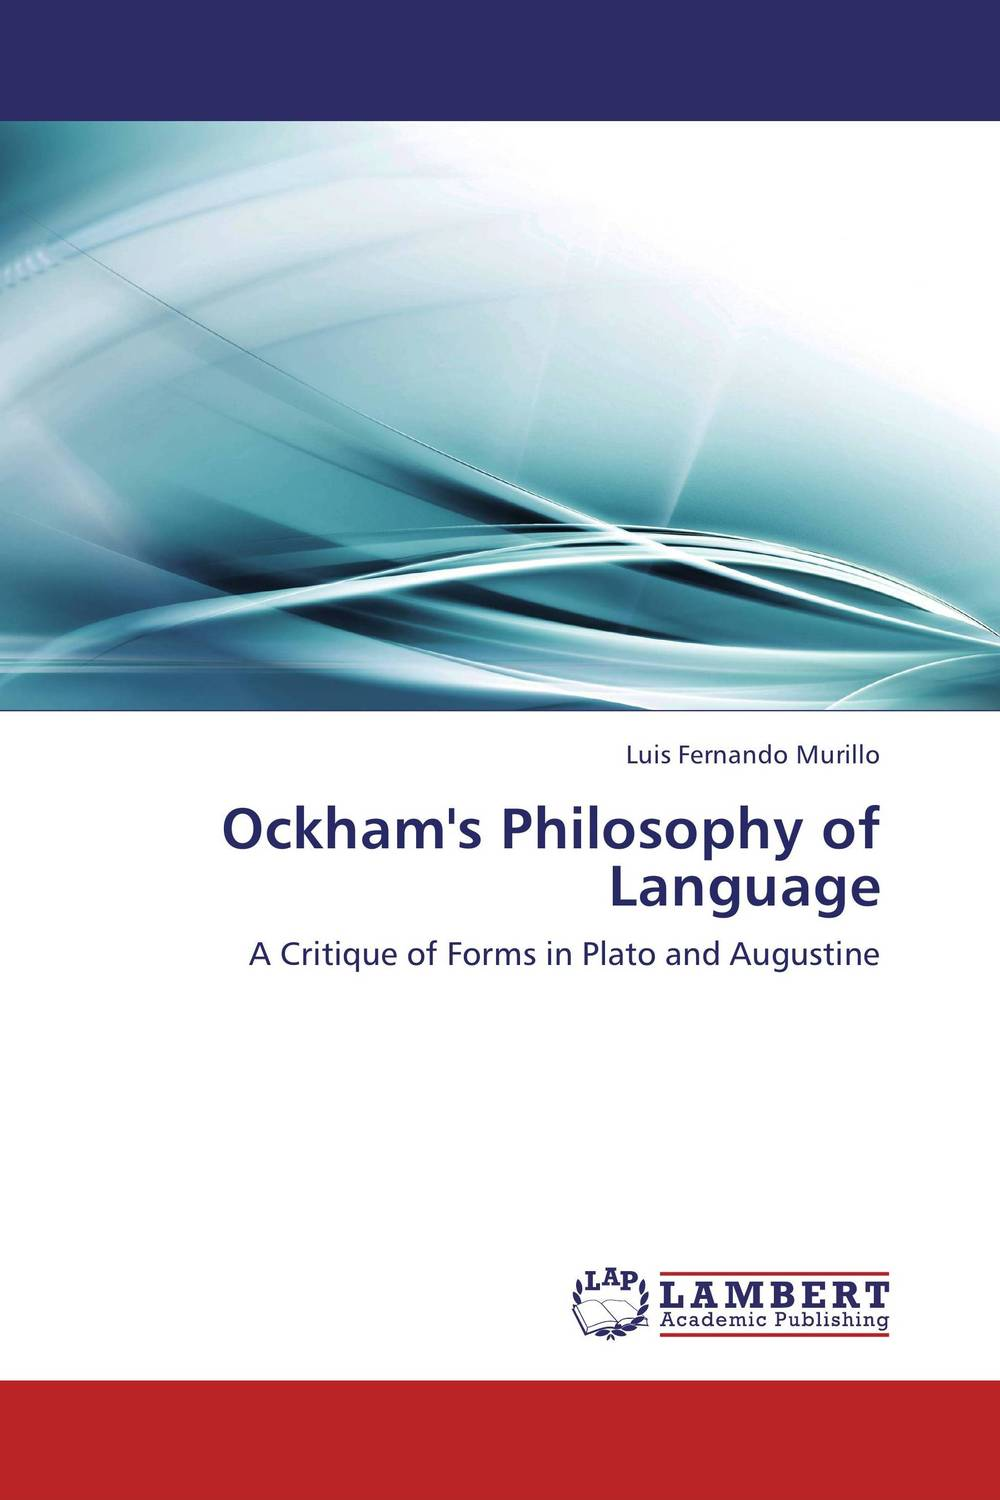 Ockham's Philosophy of Language ways of meaning – an introduction to a philosophy of language